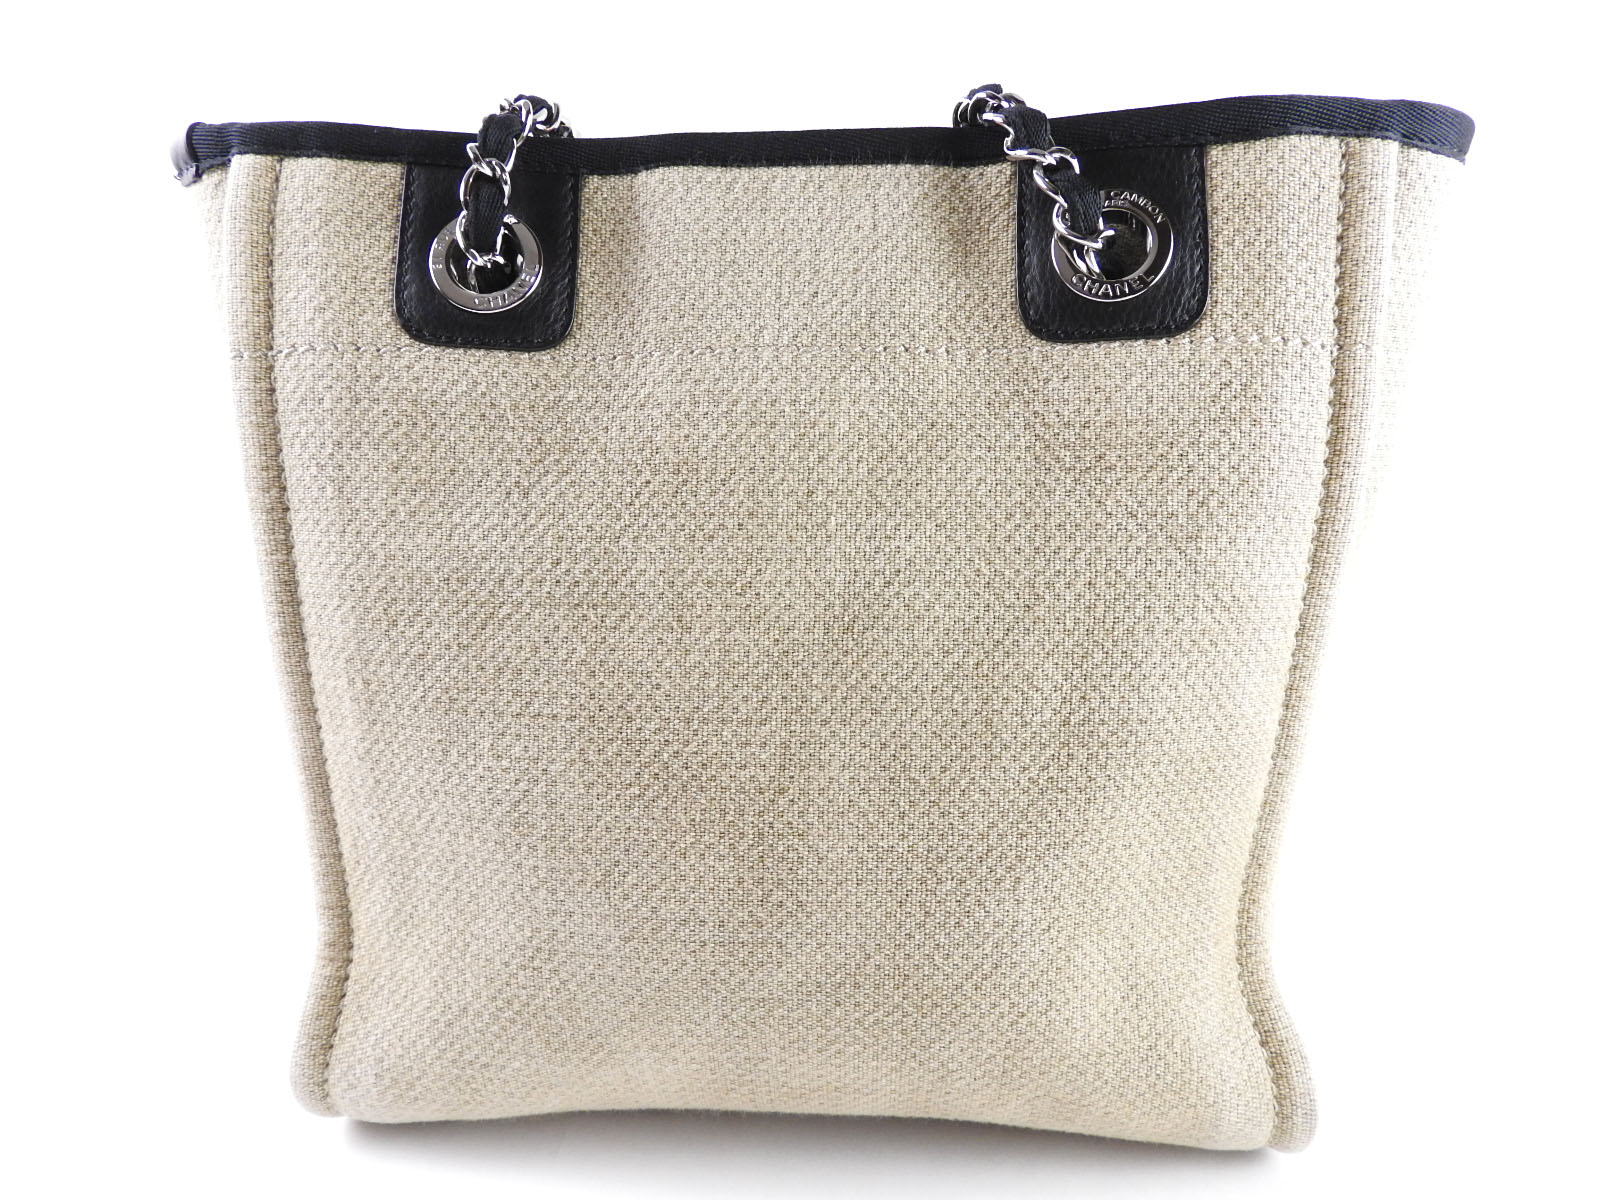 f502416e594b Chanel Deauville Chain Shoulder Tote Bags | Stanford Center for ...